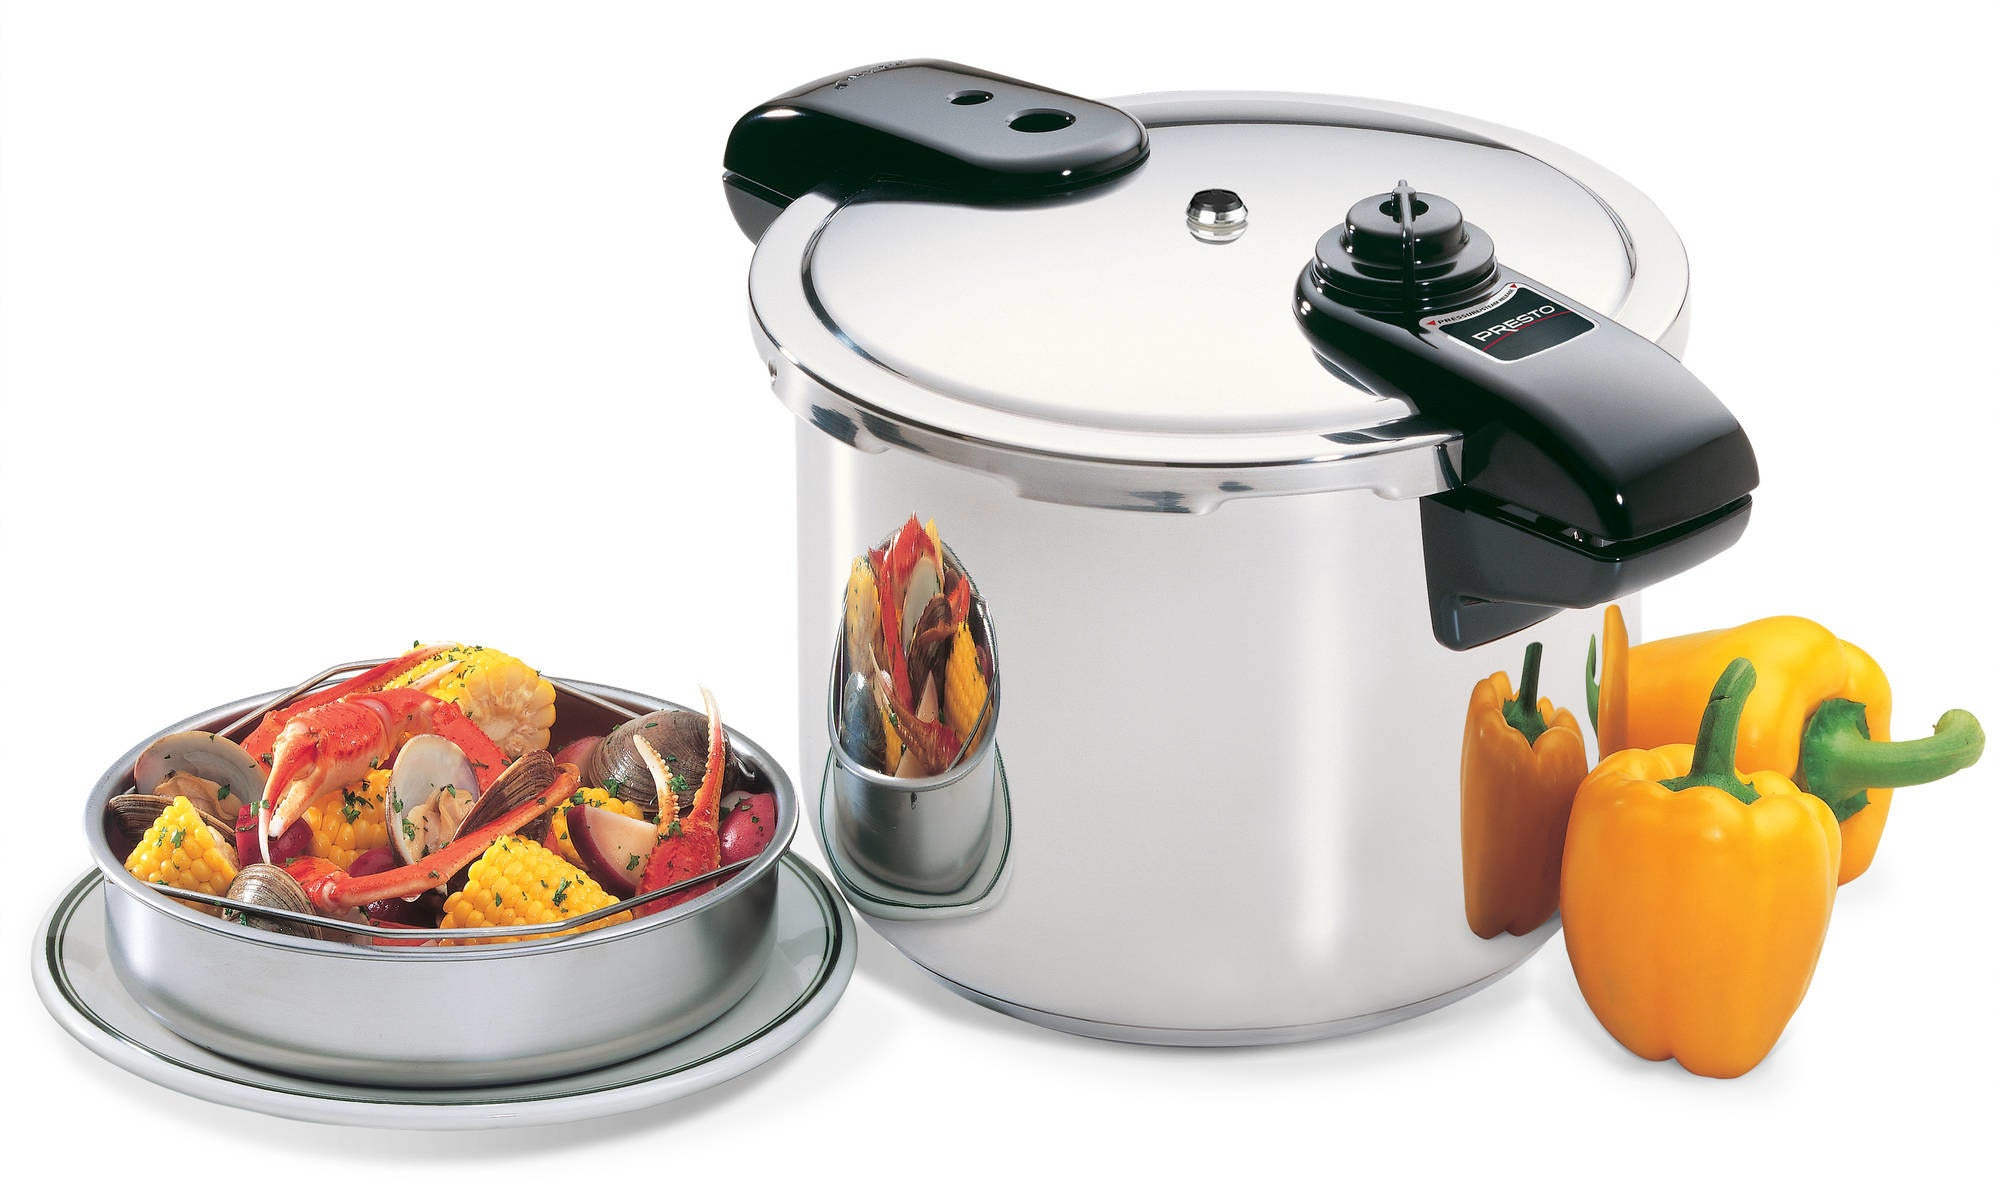 A eight-quart stainless steel pressure cooker